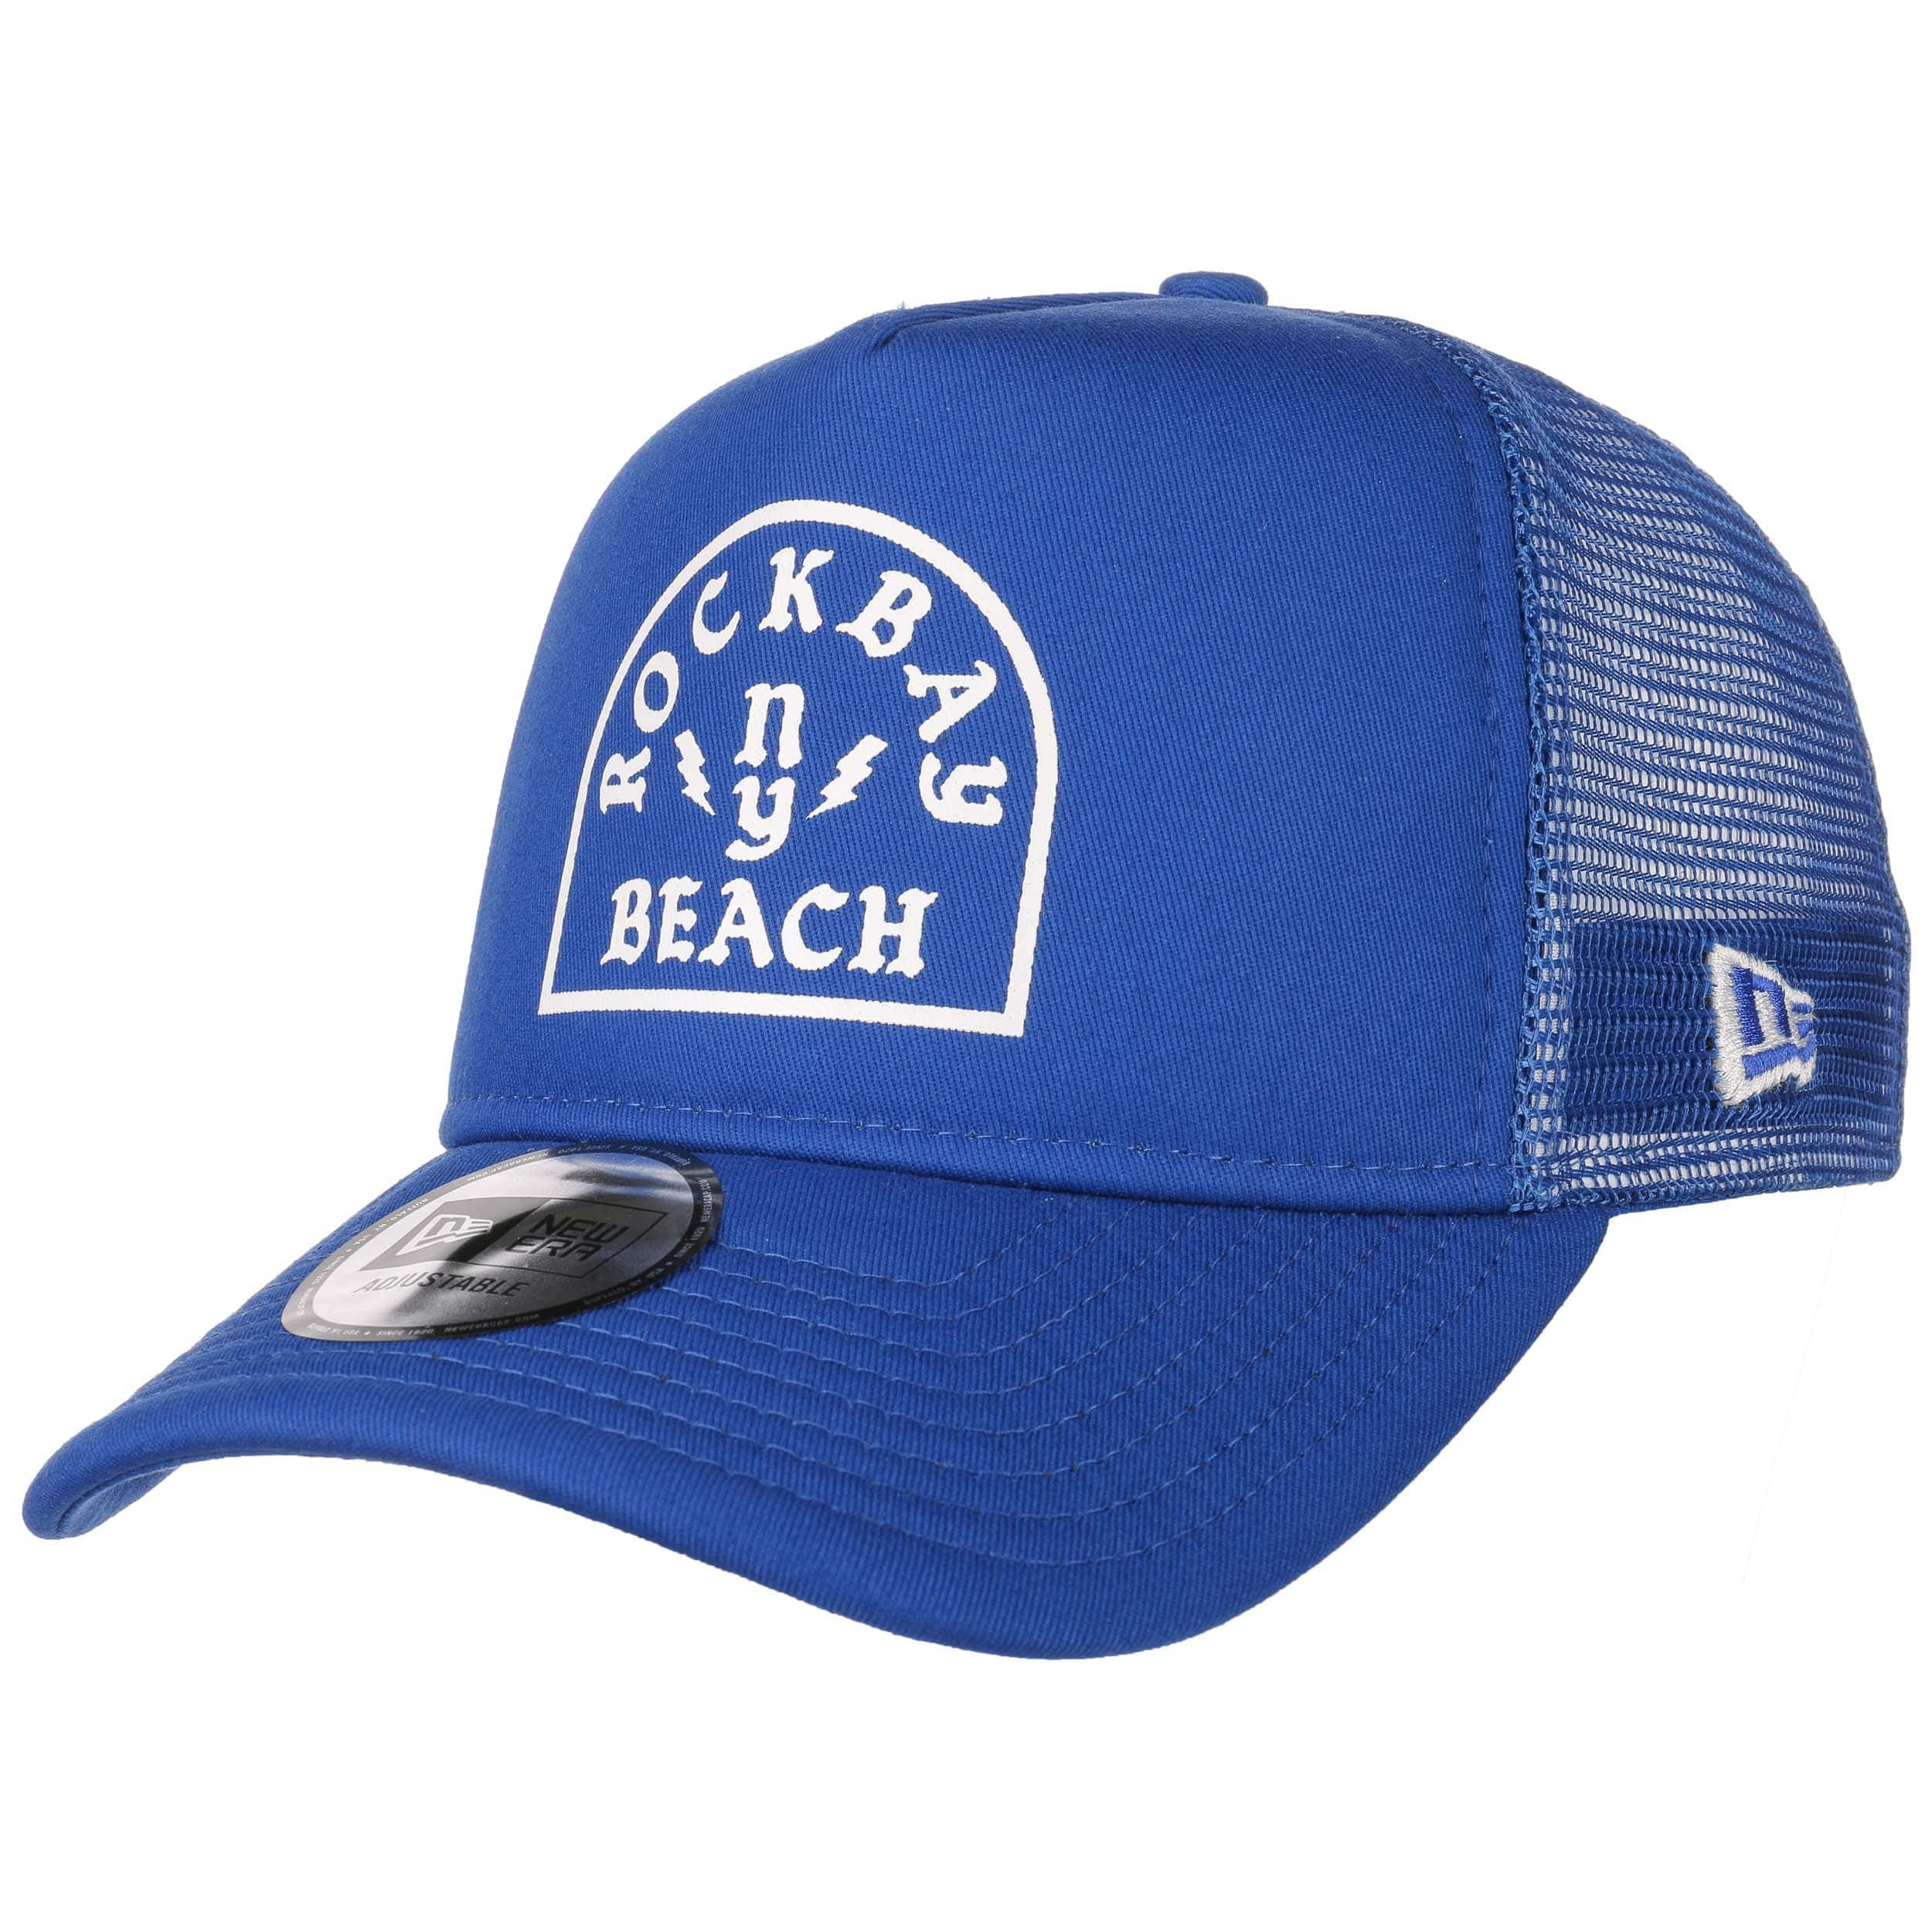 4d603fa5c55ab ... Casquette Trucker Rockbay Beach by New Era - royalbleu 6